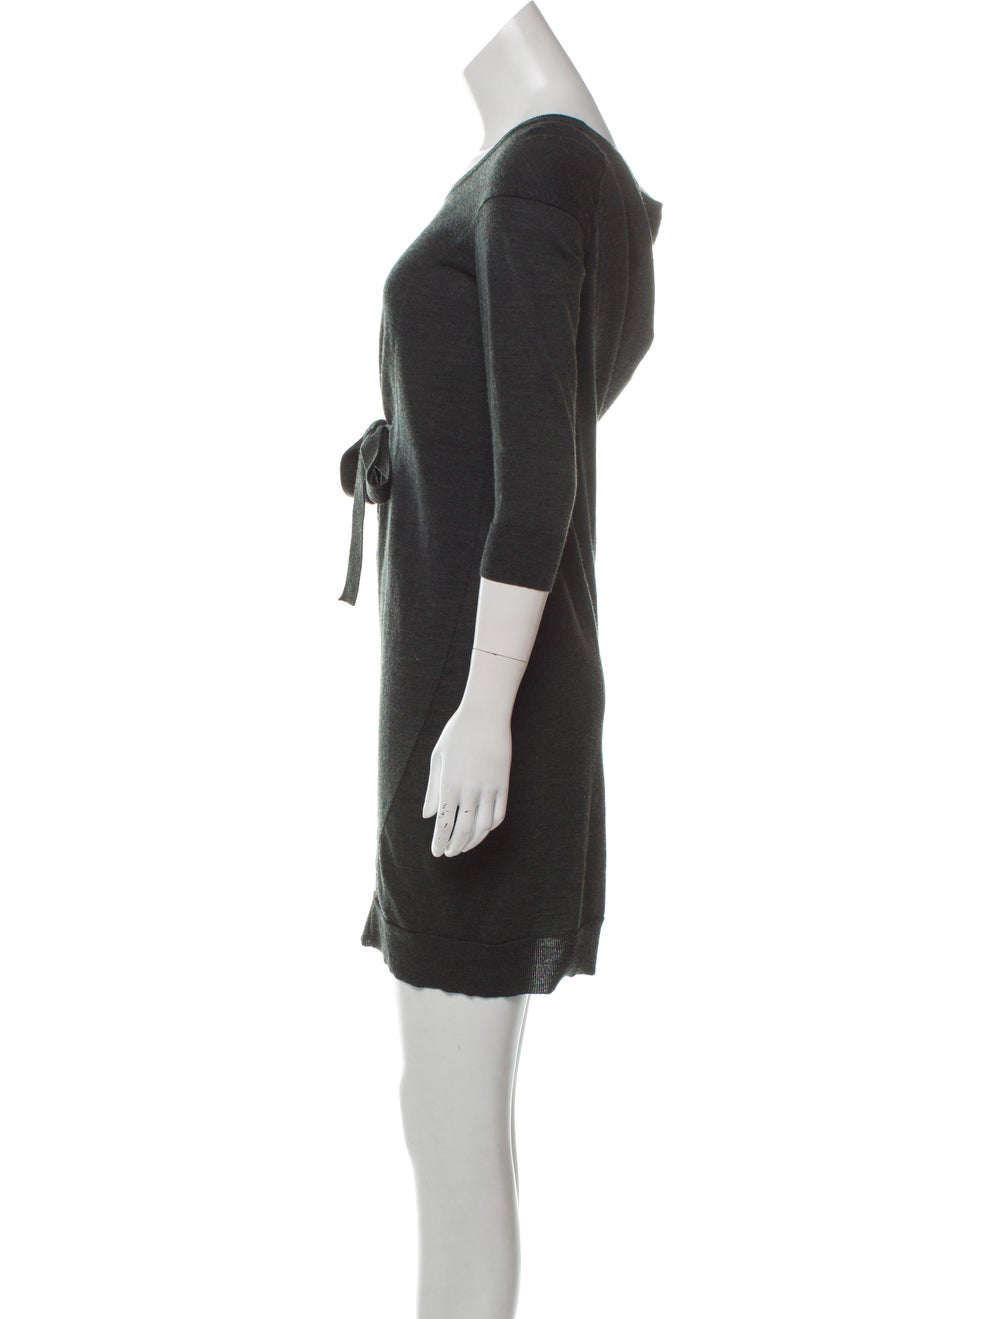 Balenciaga Wool Knit Dress green - image 2